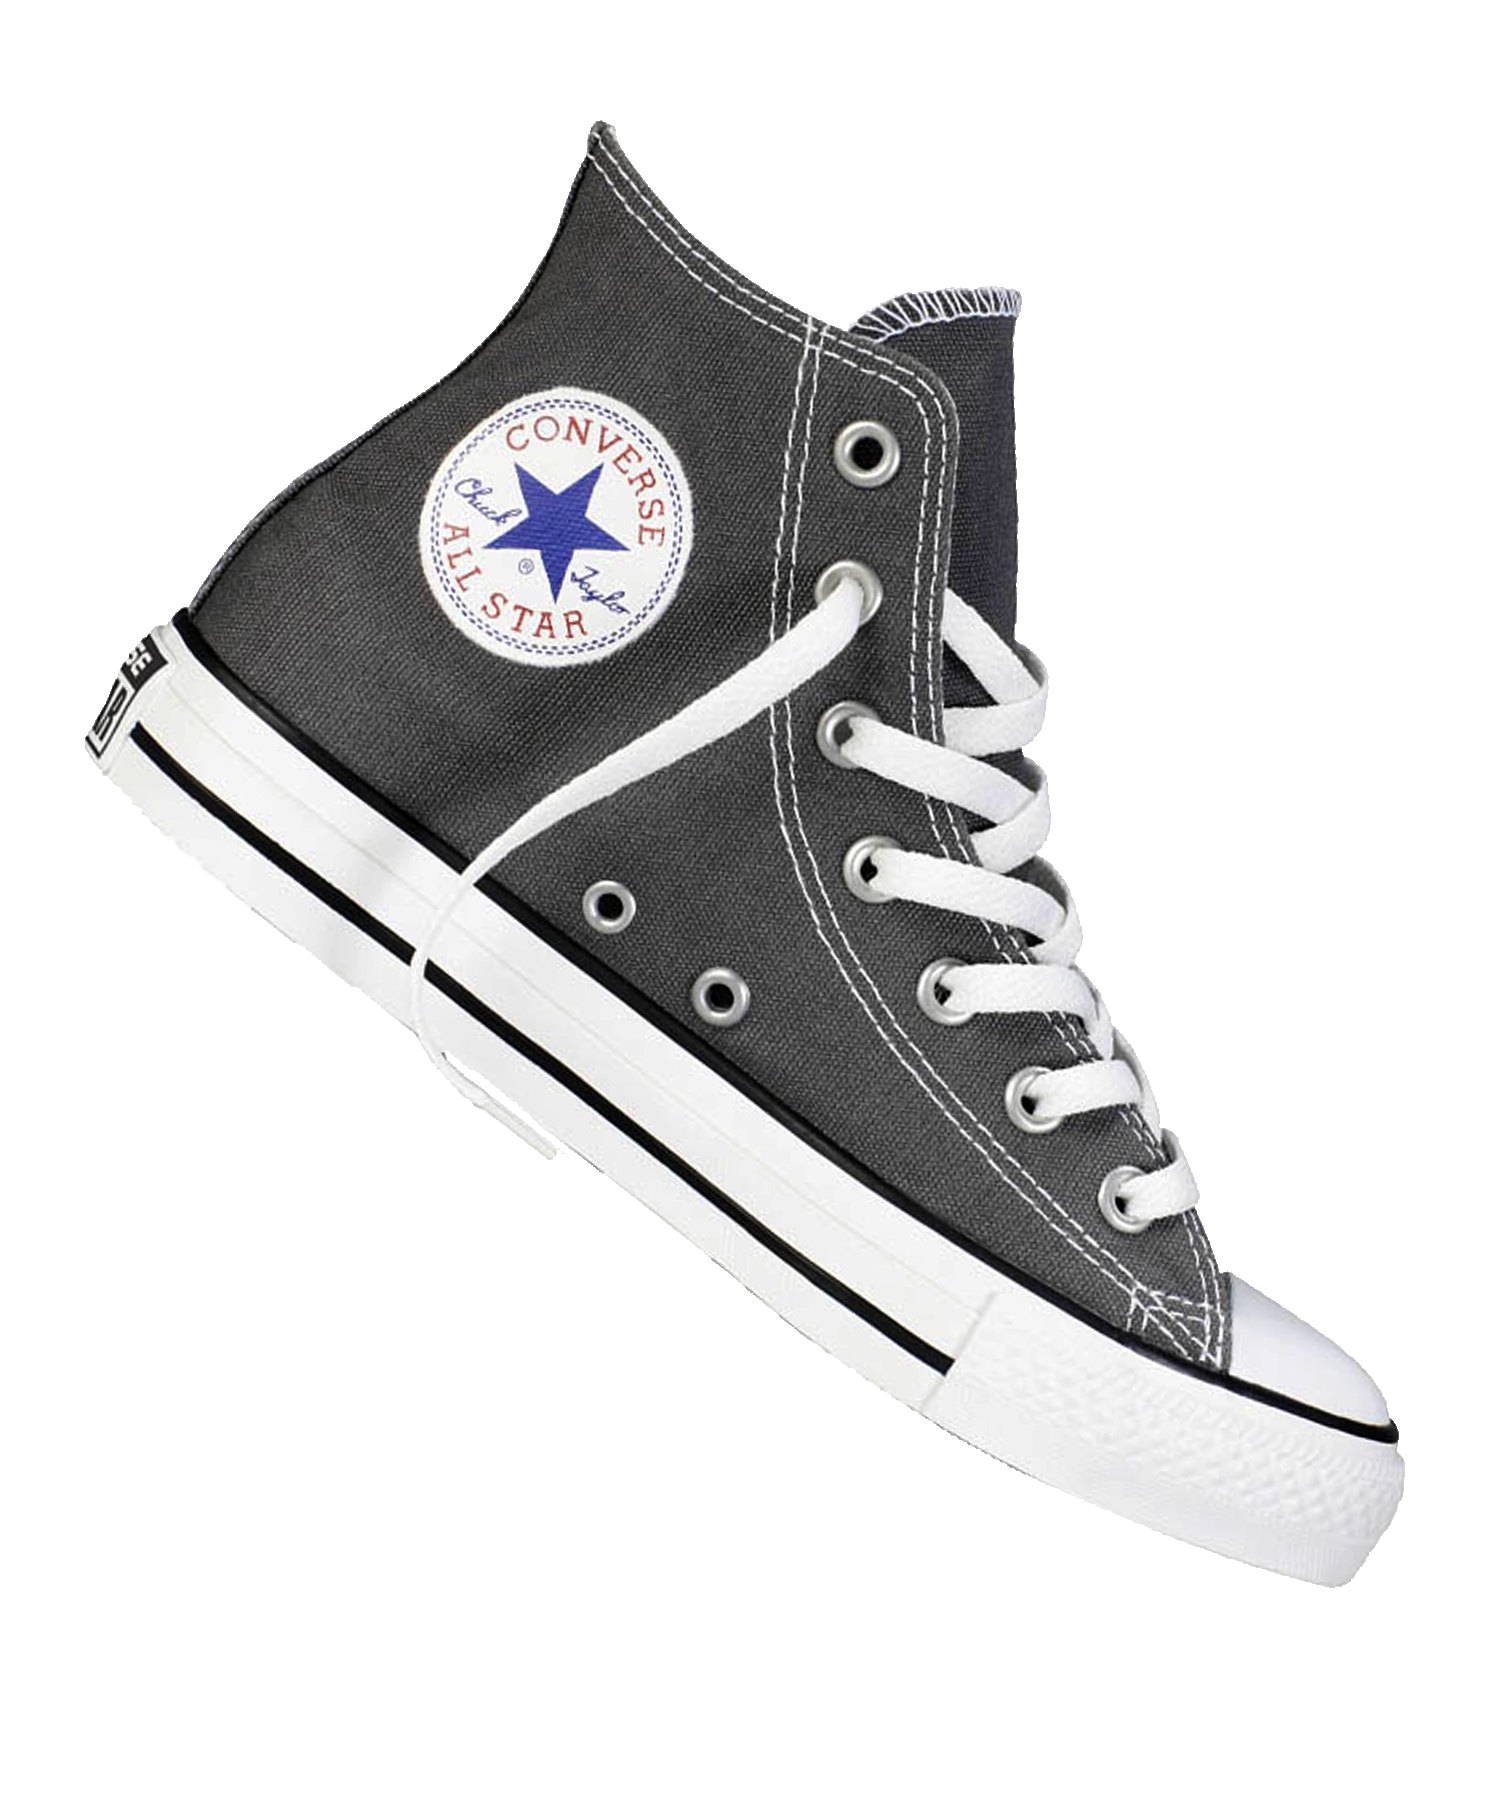 Converse Sneaker Chuck Taylor AS High Grau - grau